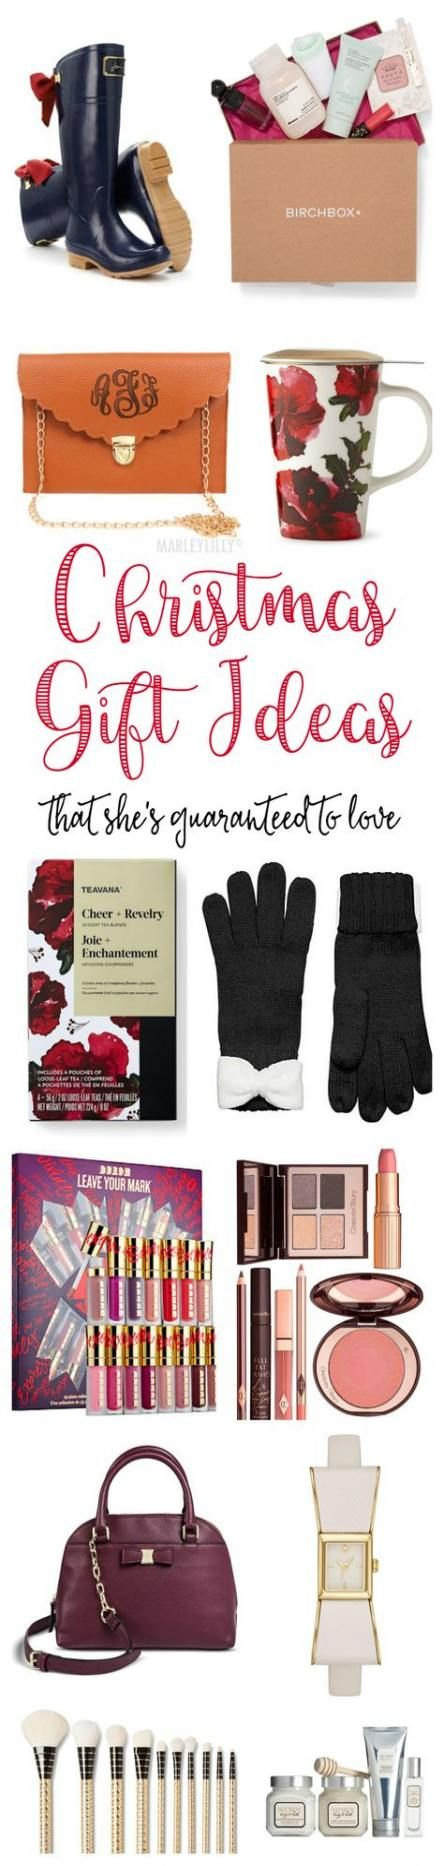 21+ Ideas Gifts Ideas For Women Over 50 Fun gifts